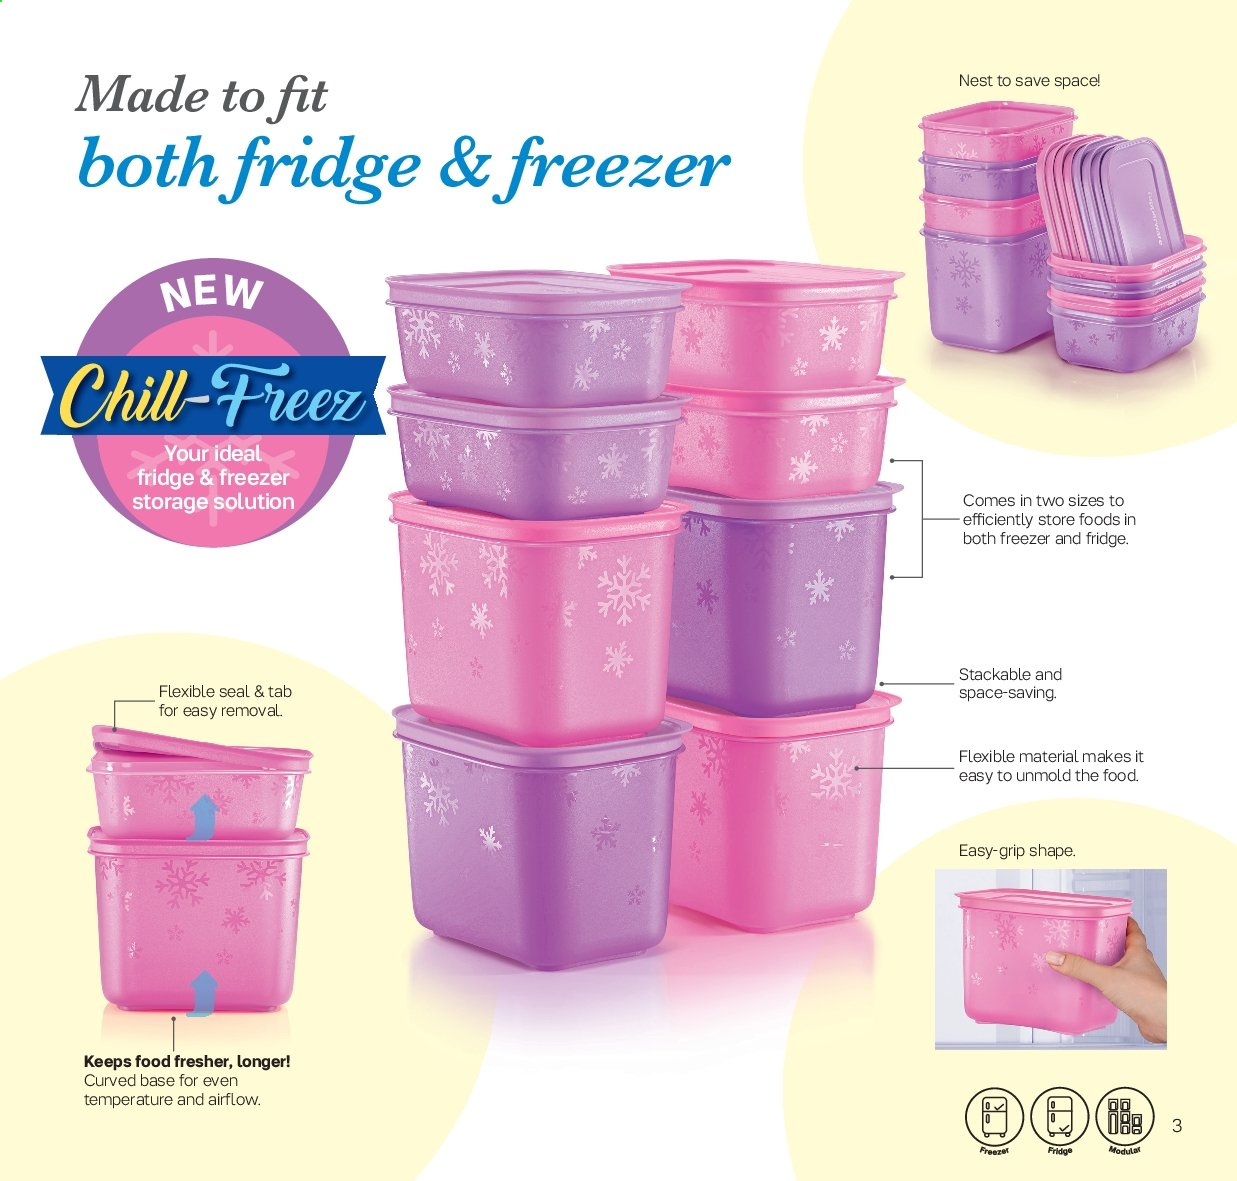 Iklan TupperwareBrands - 01.07.2019 - 31.07.2019. Halaman 3.